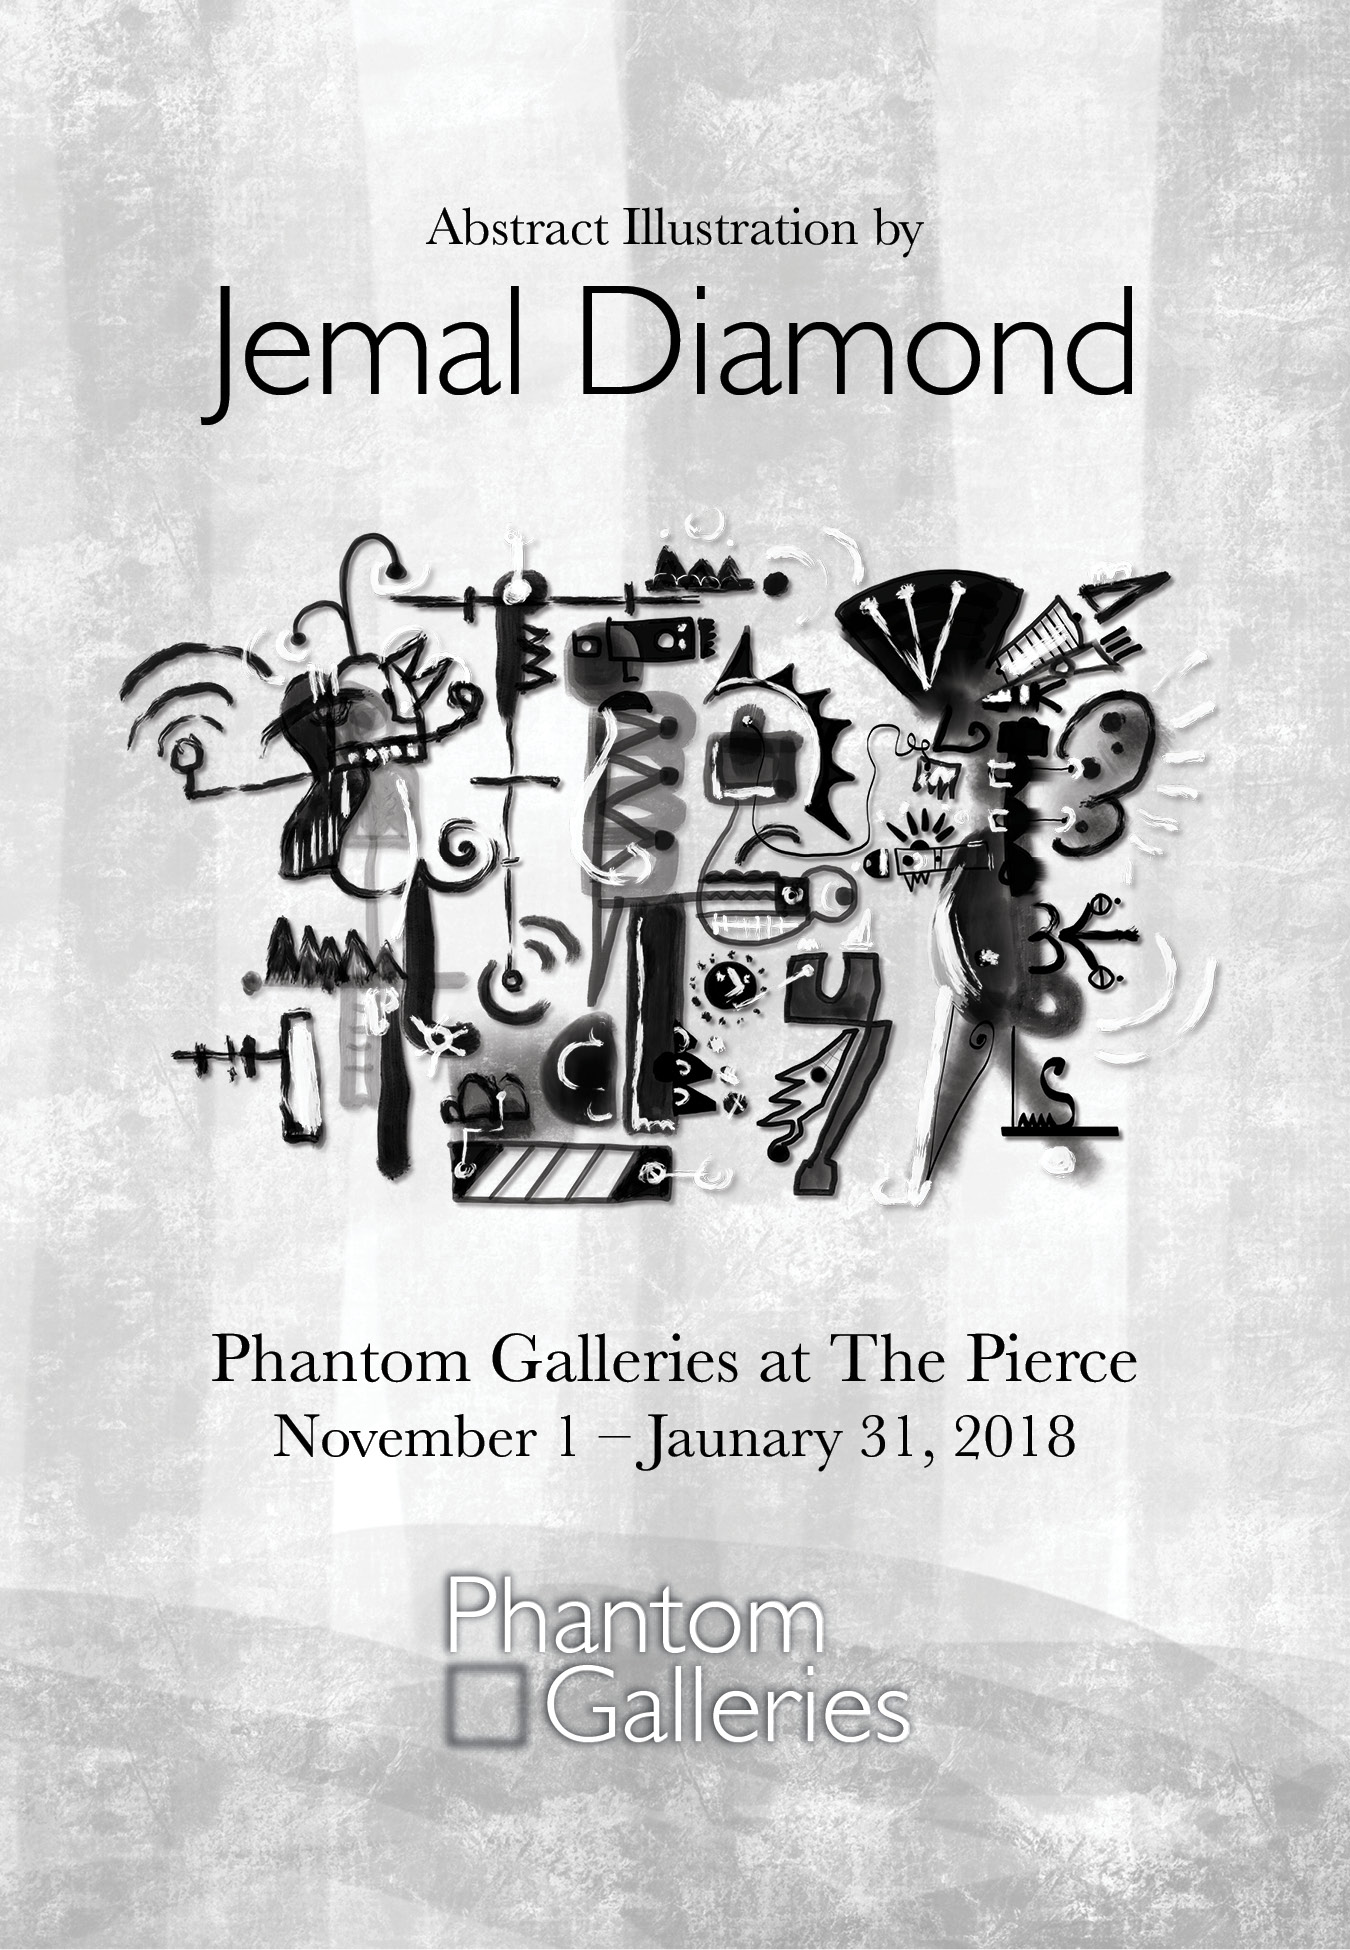 - Phantom Galleries is pleased to present a special collection of limited-edition prints by abstract artist Jemal Diamond. The collection, created solely on the Apple iPad, explores at the cross-section of digital design and traditional mark making to create new, contradictory, layered, abstracted figures and landscapes.A graduate of the School of the Art Institute of Chicago, Jemal takes a playful, improvisational approach that aims to keep the viewer's joyful engagement while introducing a wide-range of darker graphic indicators and visual cues.For this exclusive collection, each limited-edition fine art print, hand-signed by Jemal, is beautifully mounted in a black satin wood frame, printed on Pura Fine Art velvet paper, 4-ply conservation rag mat, and acrylic non-glare glazing.Curator Vivian Giourousis' teaser video:click here.